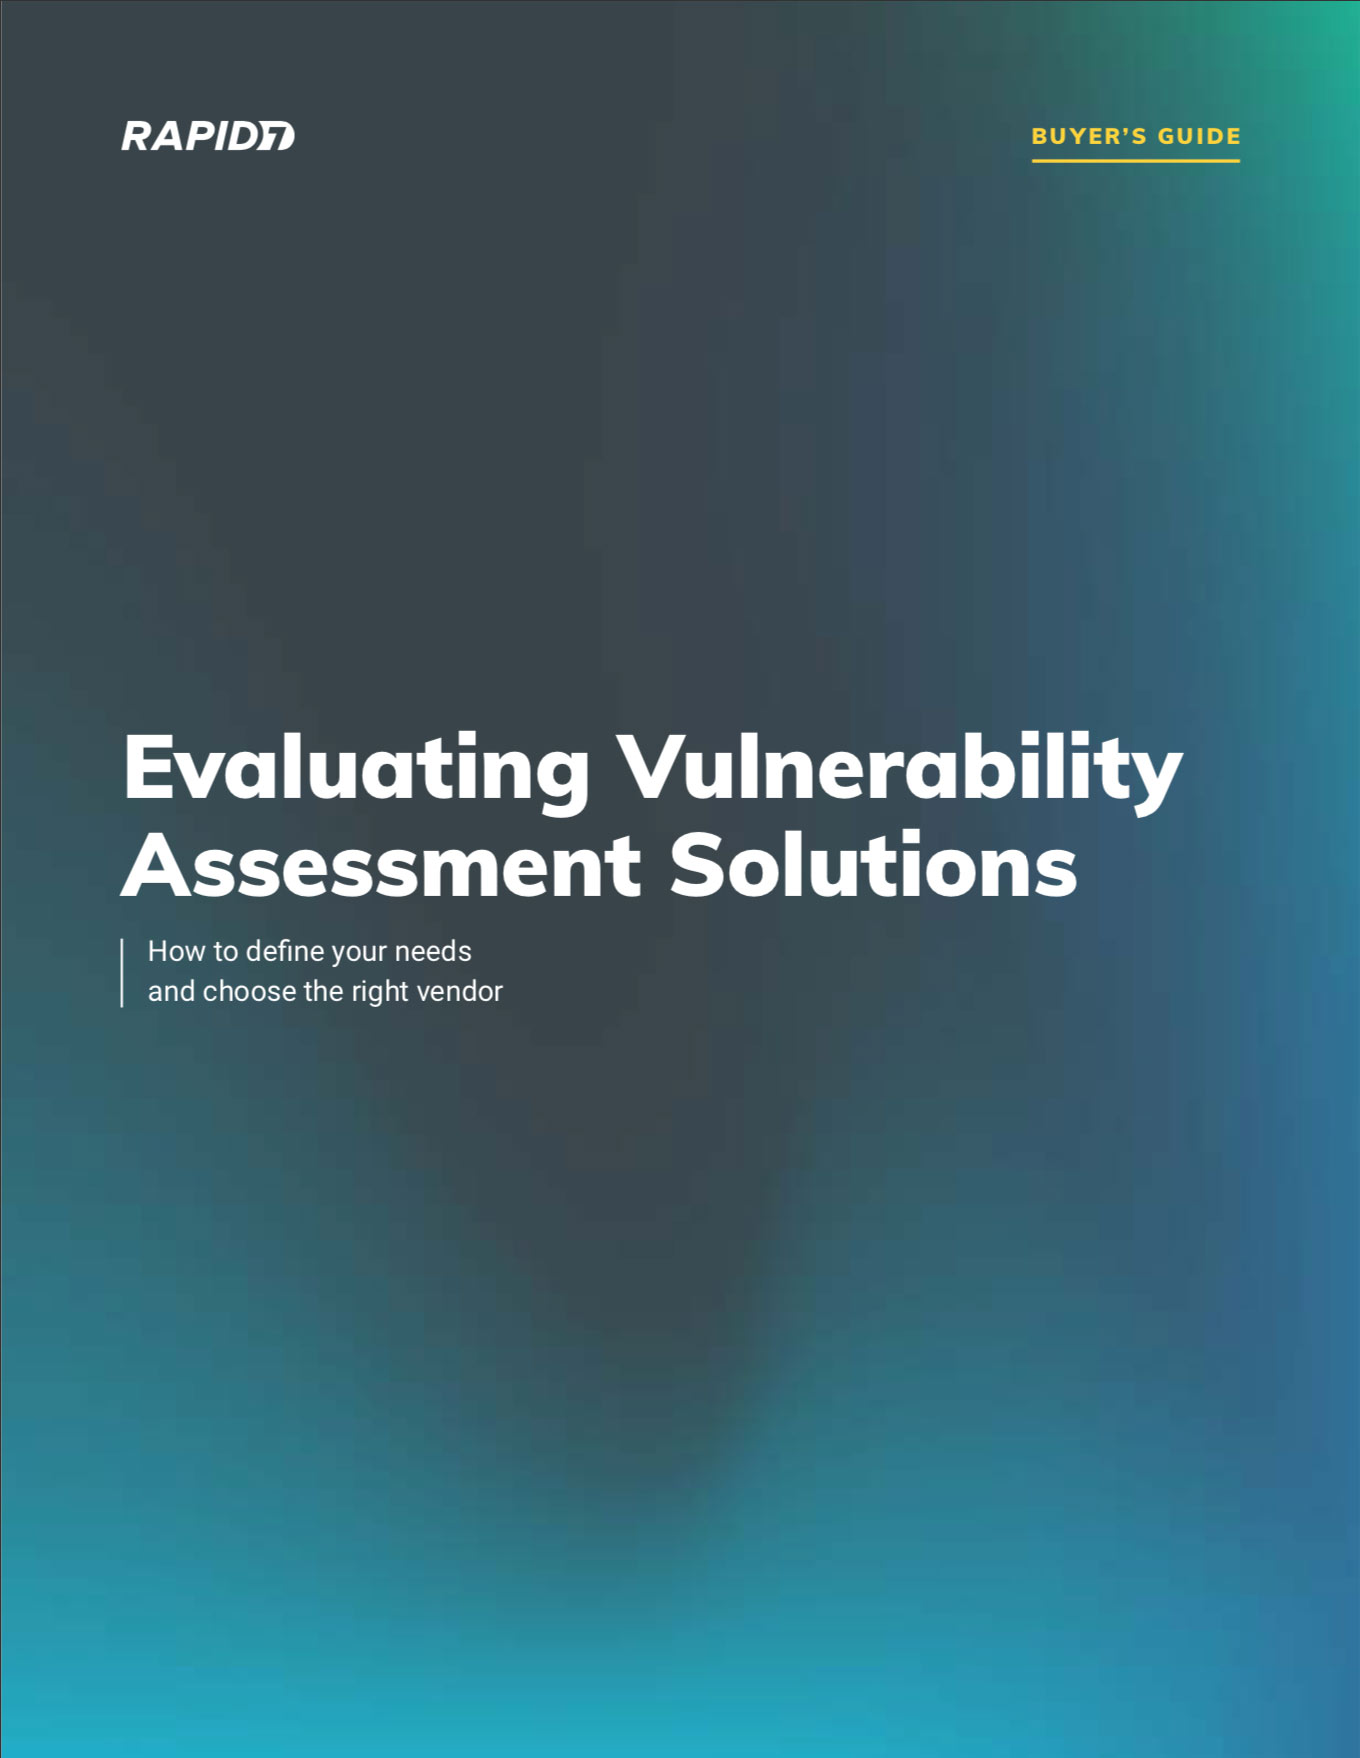 Rapid7 Vulnerability Assessment Buyer's Guide